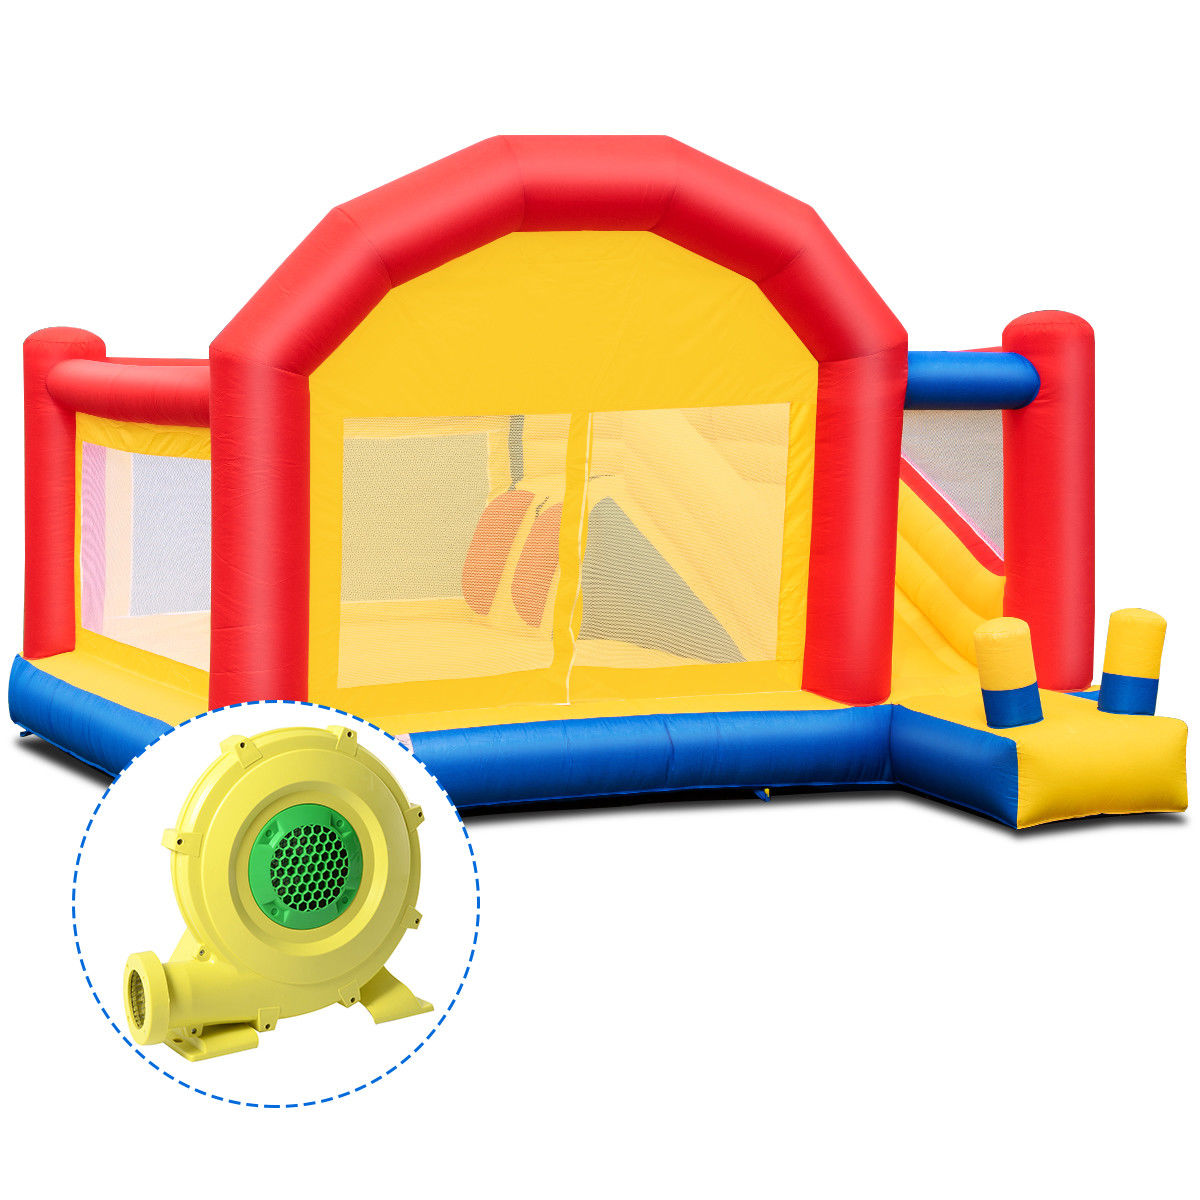 Costway Inflatable Bounce House Slide Bouncer Castle Jumper Playhouse w/ 950W Blower